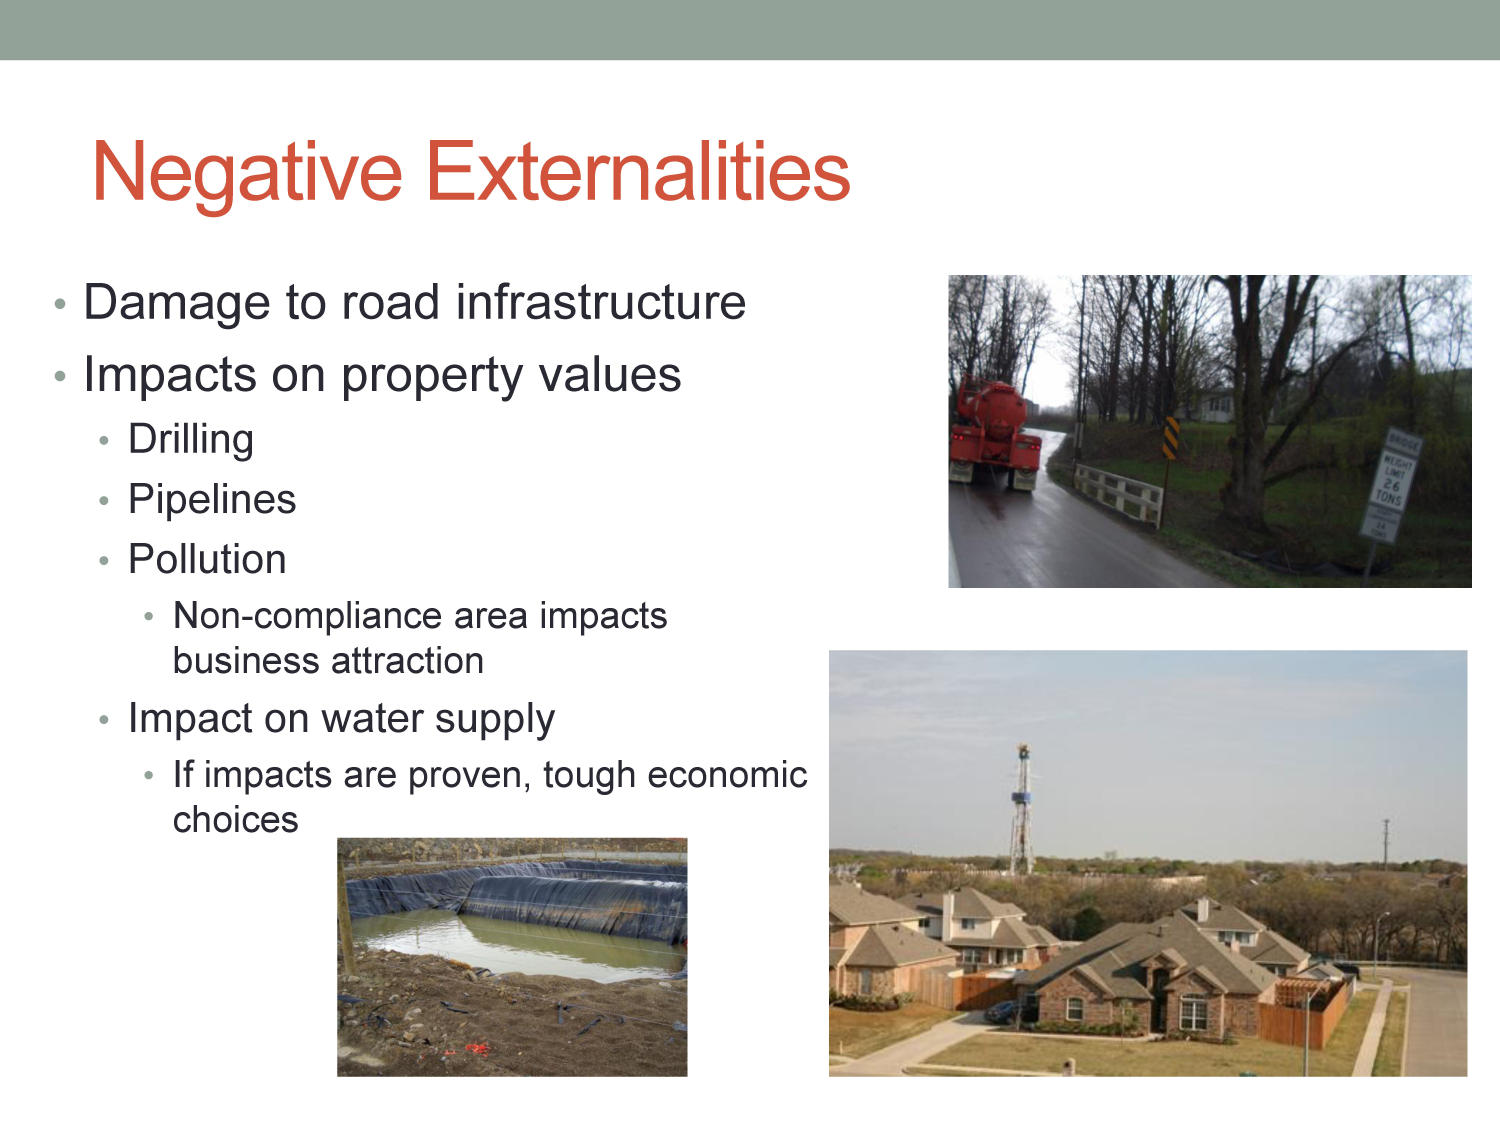 Economic Impacts of the Natural Gas Industry in North Texas                                                                                                      [Sequence #]: 10 of 11